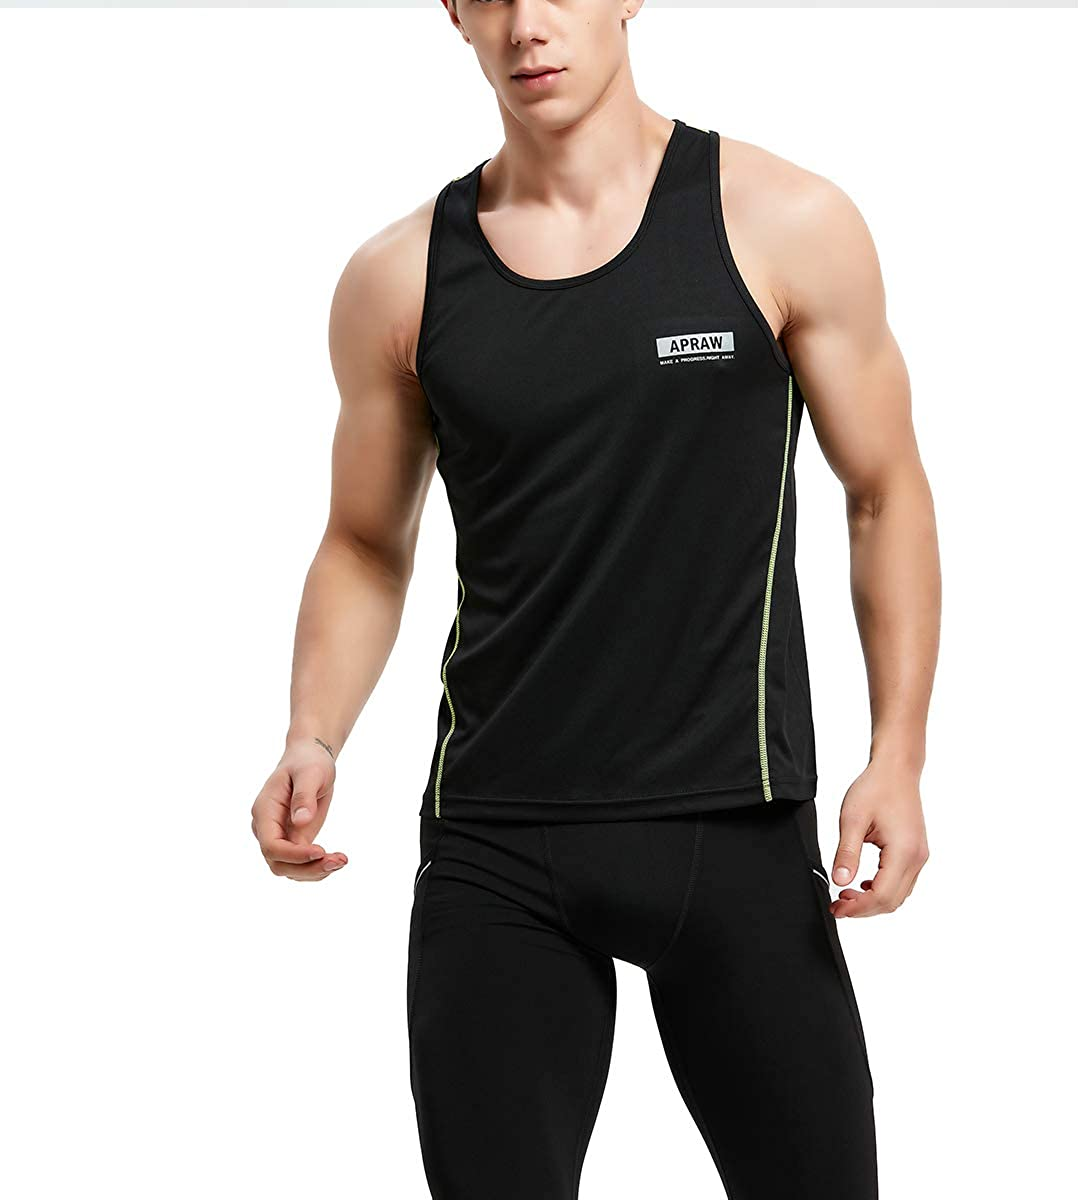 APRAW Mens 3 Pack Quick Dry Tank Tops Compression Muscle Shirts Training Compression Baselayer